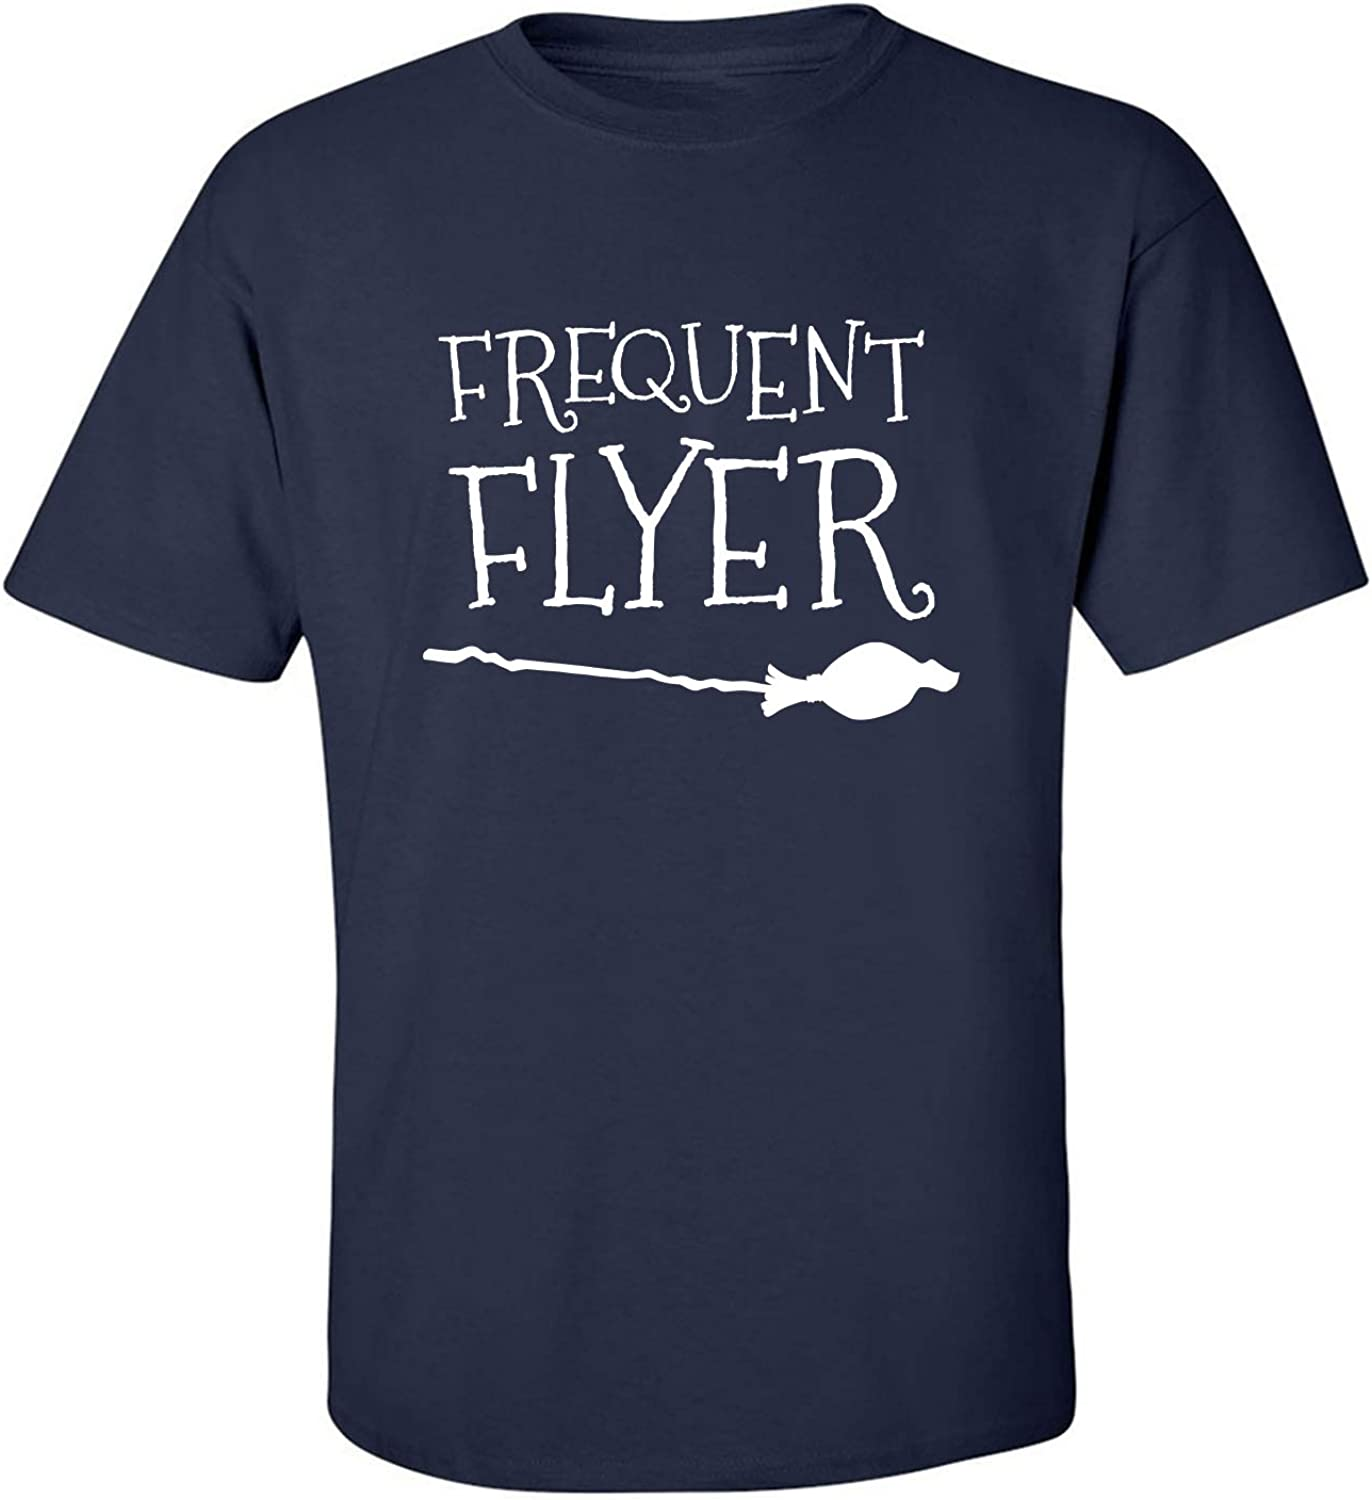 Frequent Flyer Adult T-Shirt in Navy - XXXX-Large